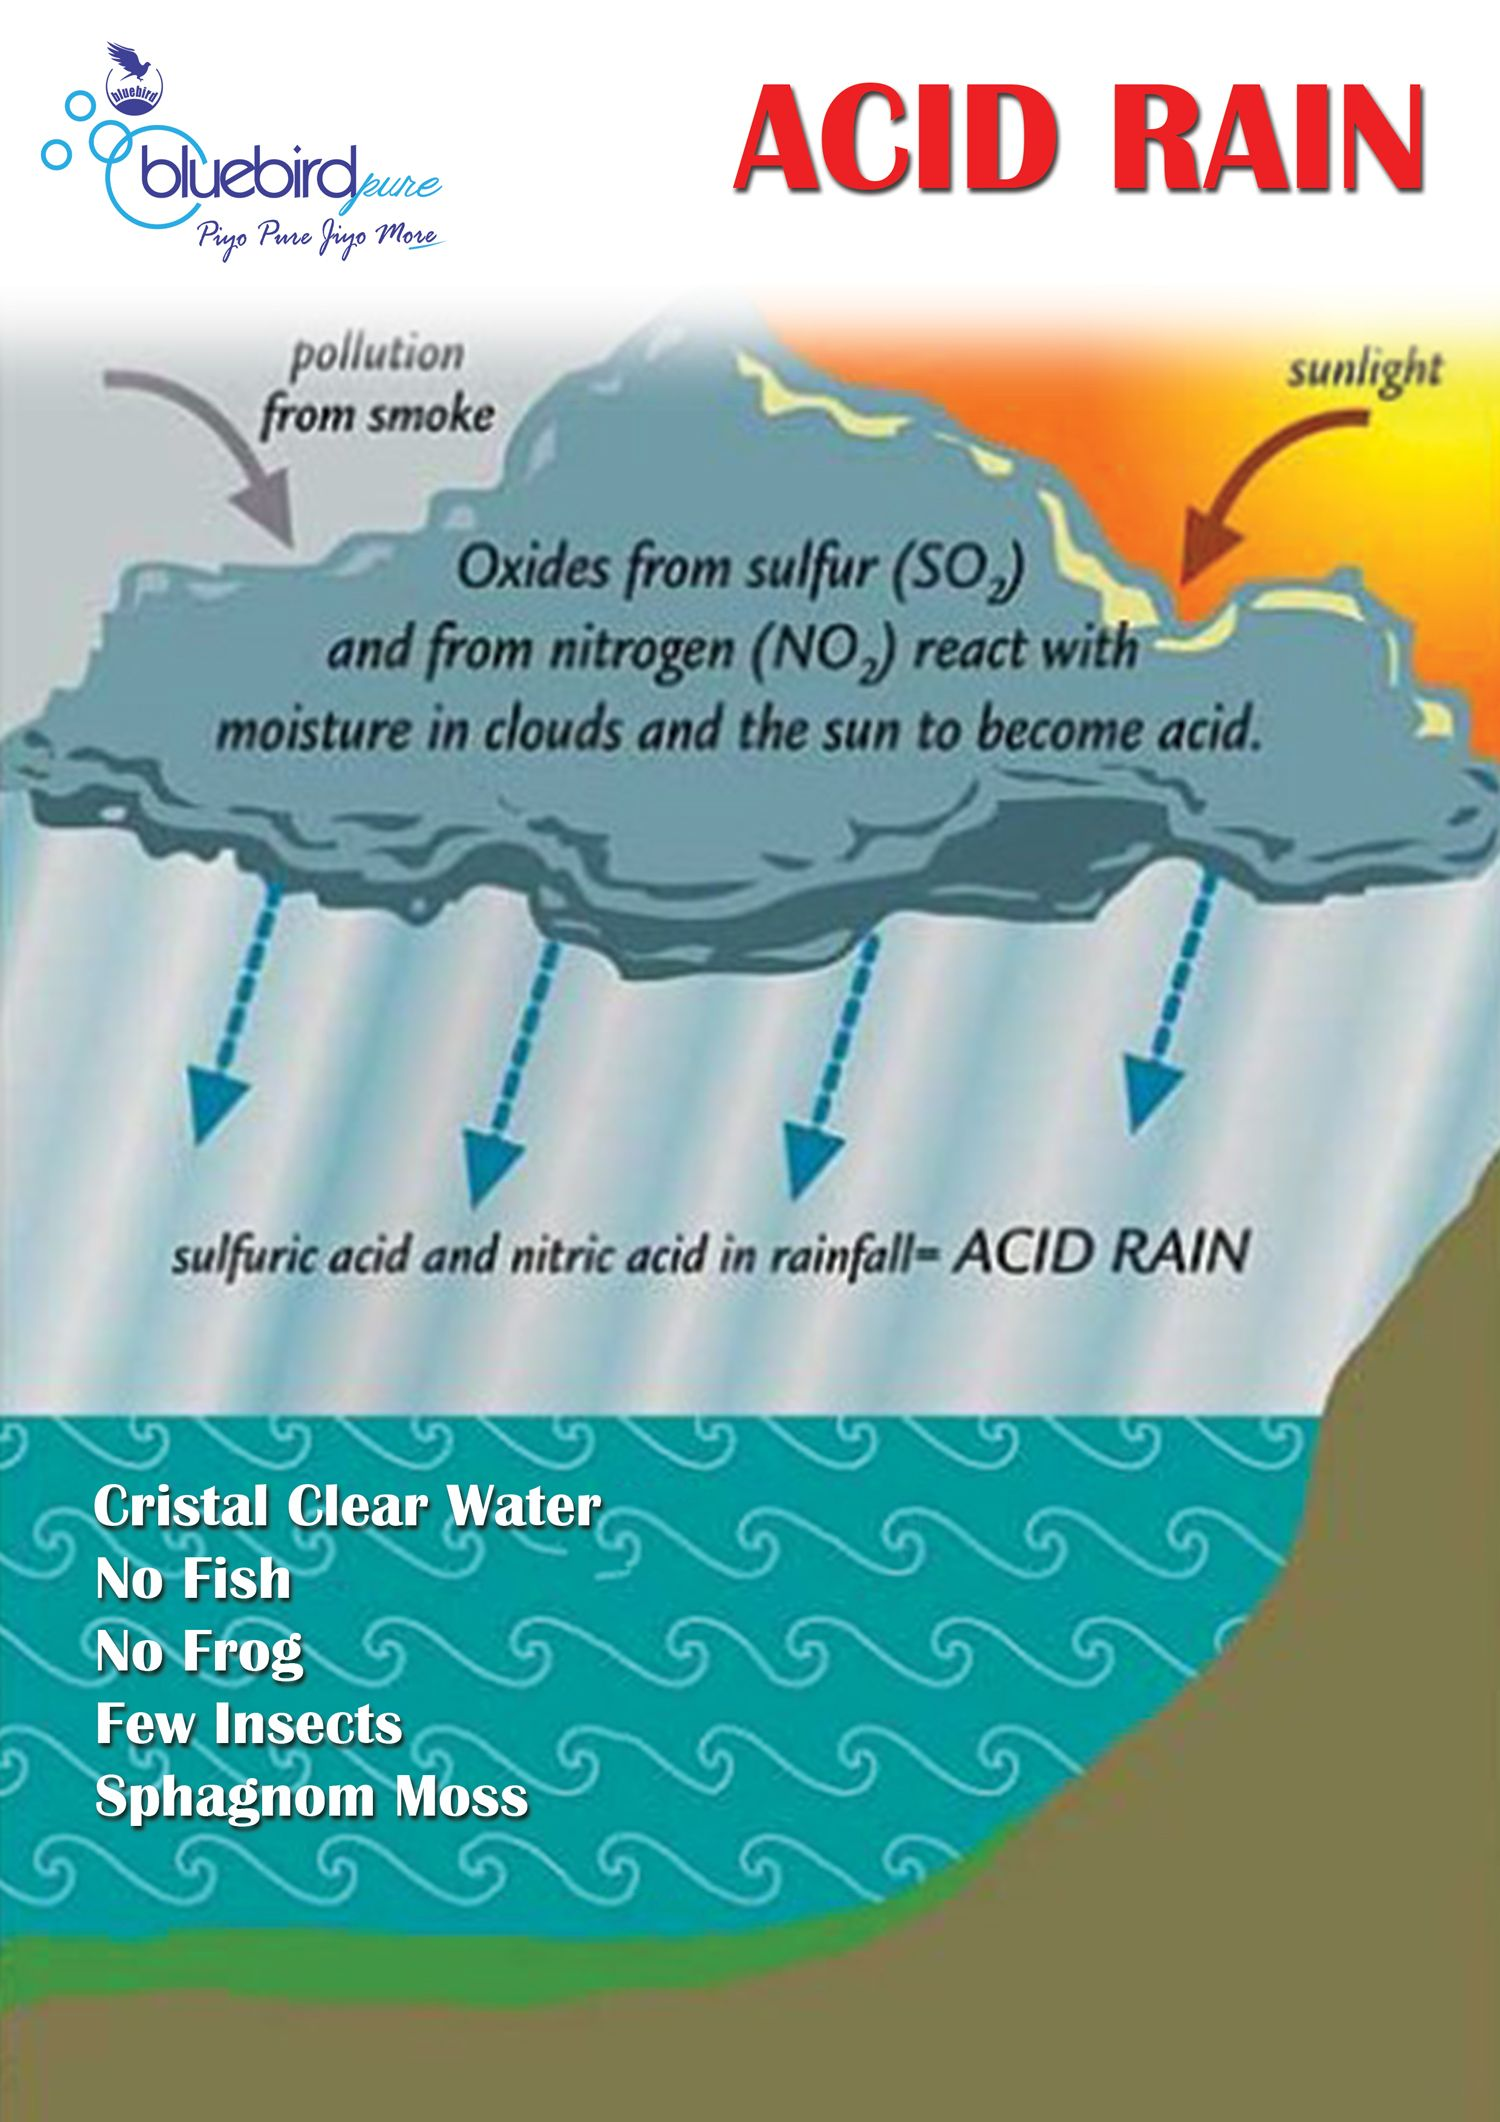 small resolution of industrial pollution can lower the ph of precipitation creating acid rain this type of precipitation can directly kill some organisms like trees and fish